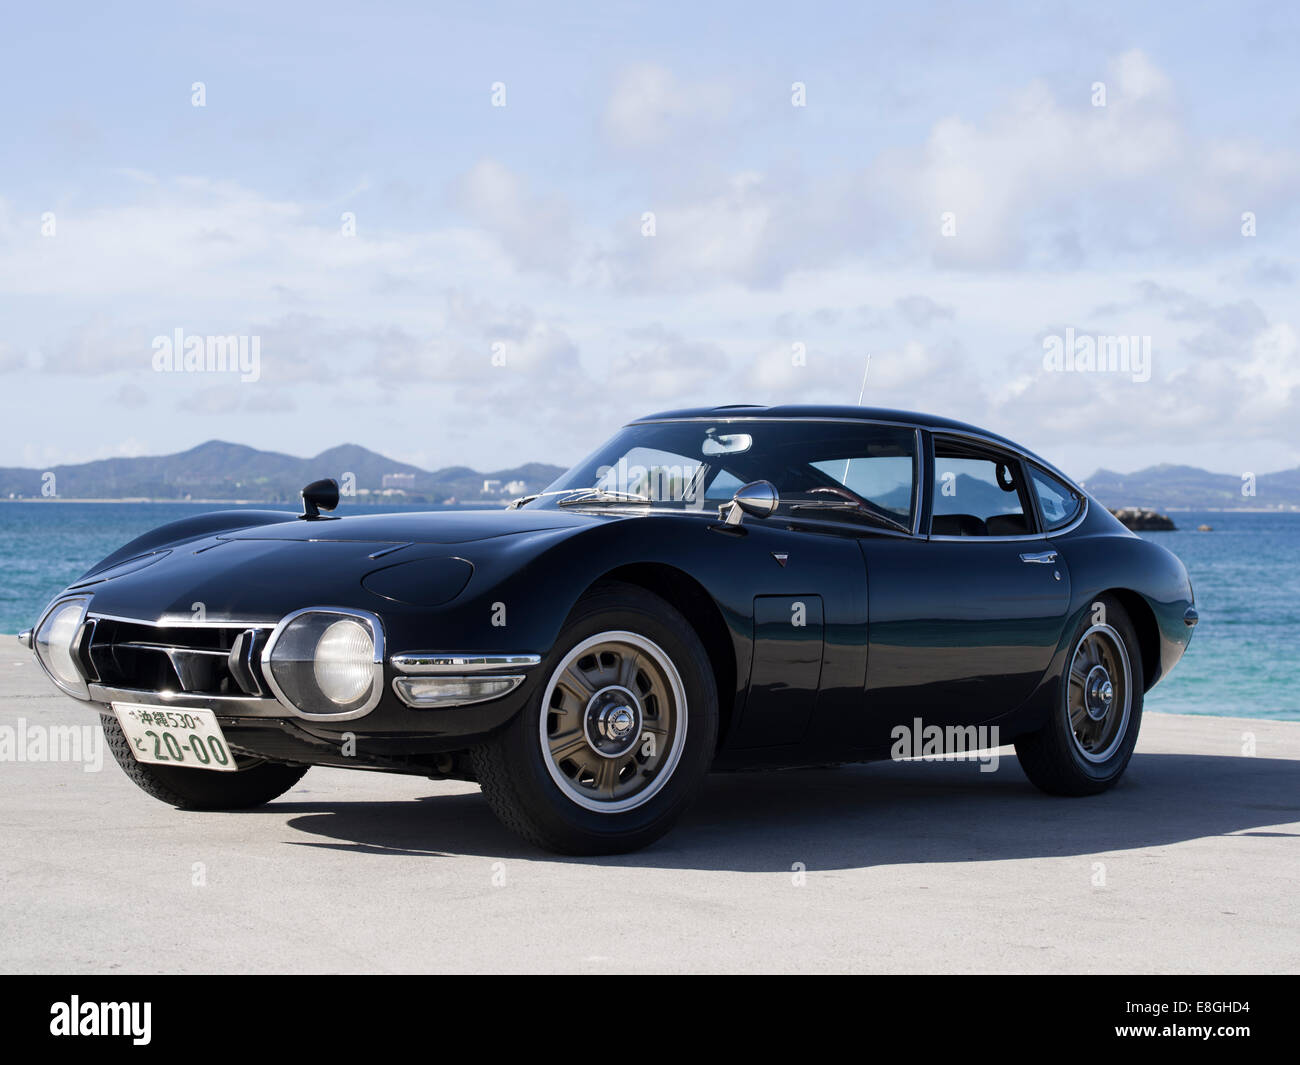 Lhd Toyota 2000gt Japanese Sports Car In Okinawa Japan Stock Photo